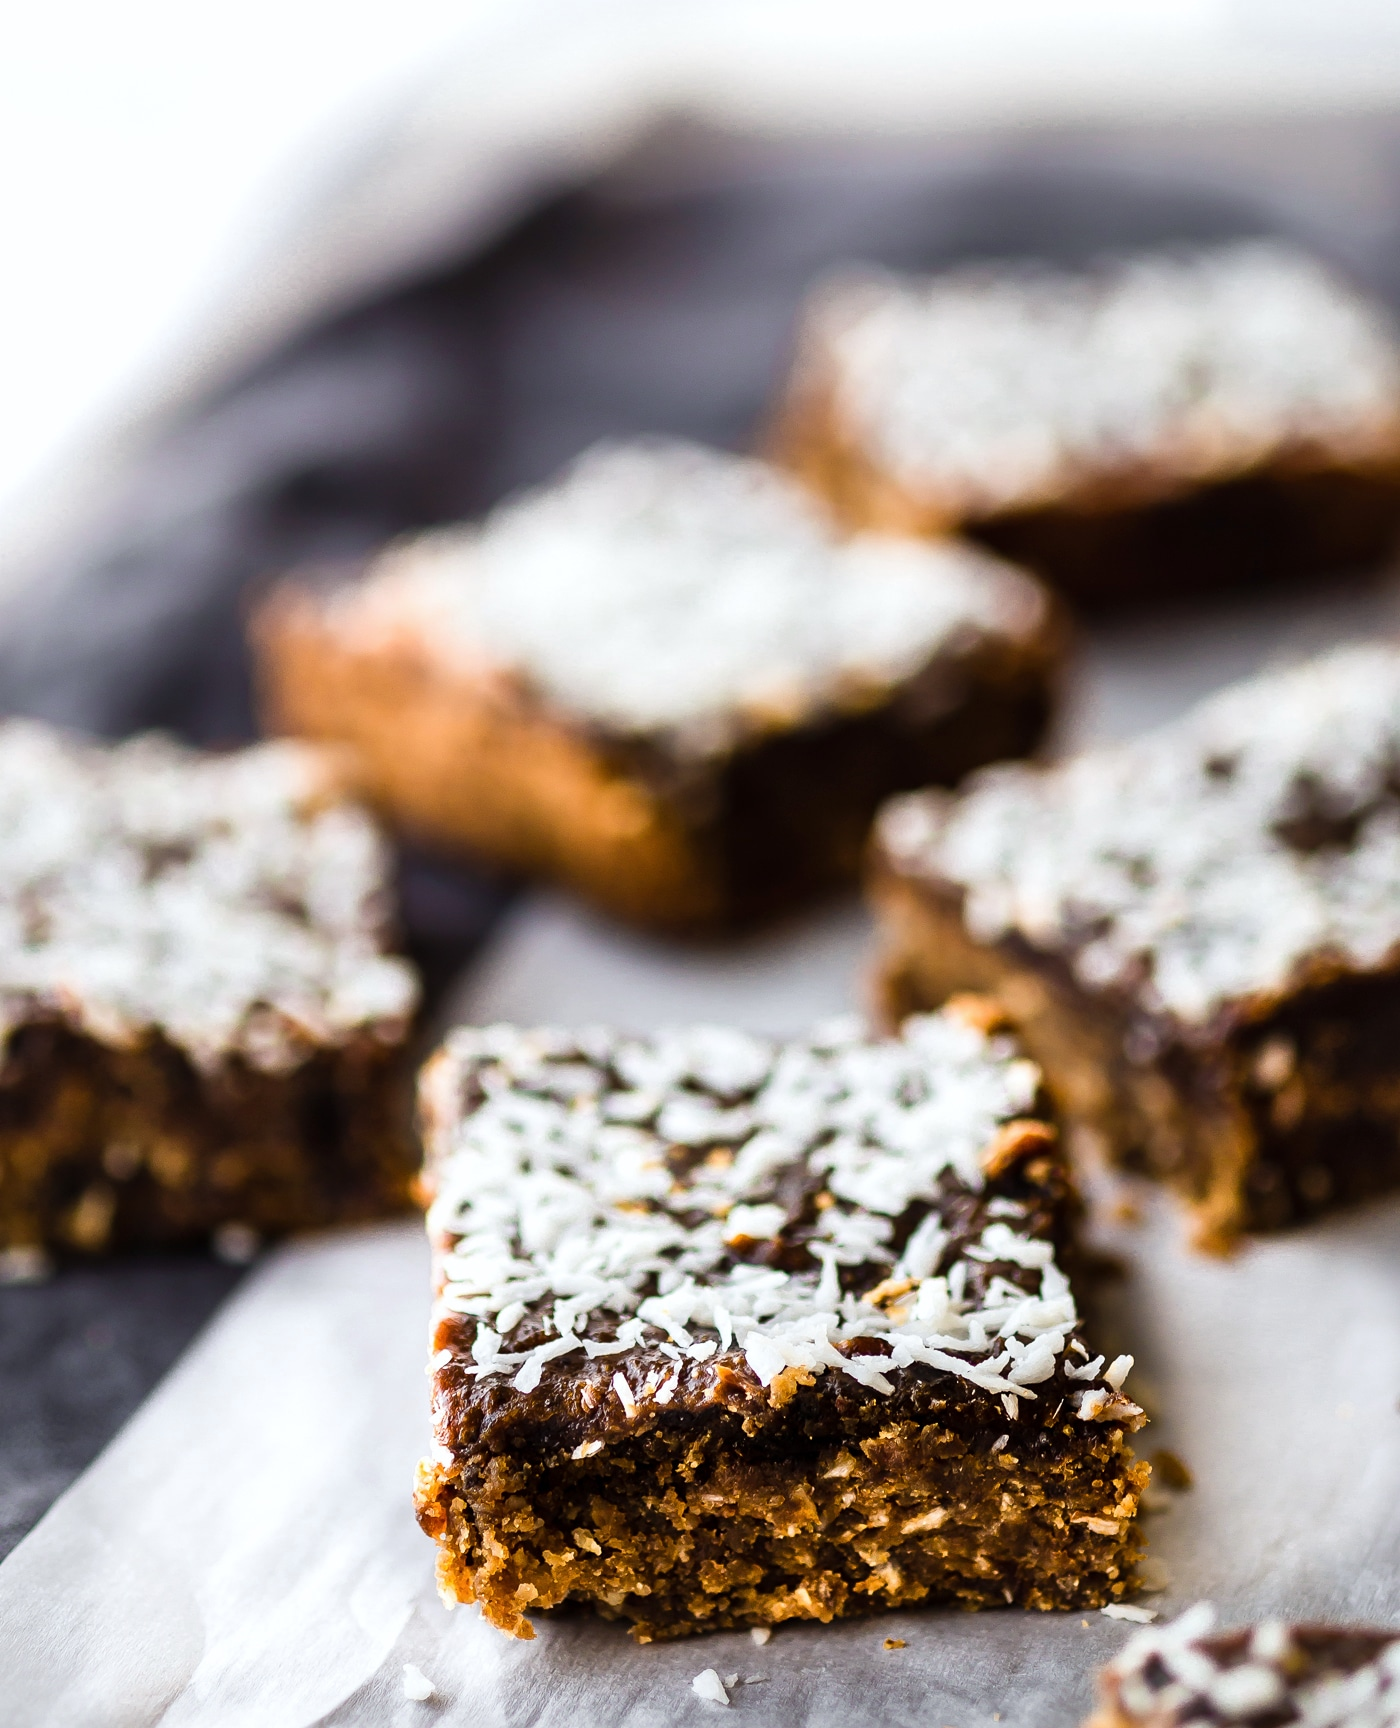 These Paleo Almond Butter Jelly Energy Bars are one of our favorite bars that fuel us for workouts and snacking on the go. Made with few ingredients; no oils and no refined sugar. Blended and Baked in just 30 minutes, Which makes them pretty amazing! So chewy and flavorful that you'd never know they were healthy. Freezer friendly.